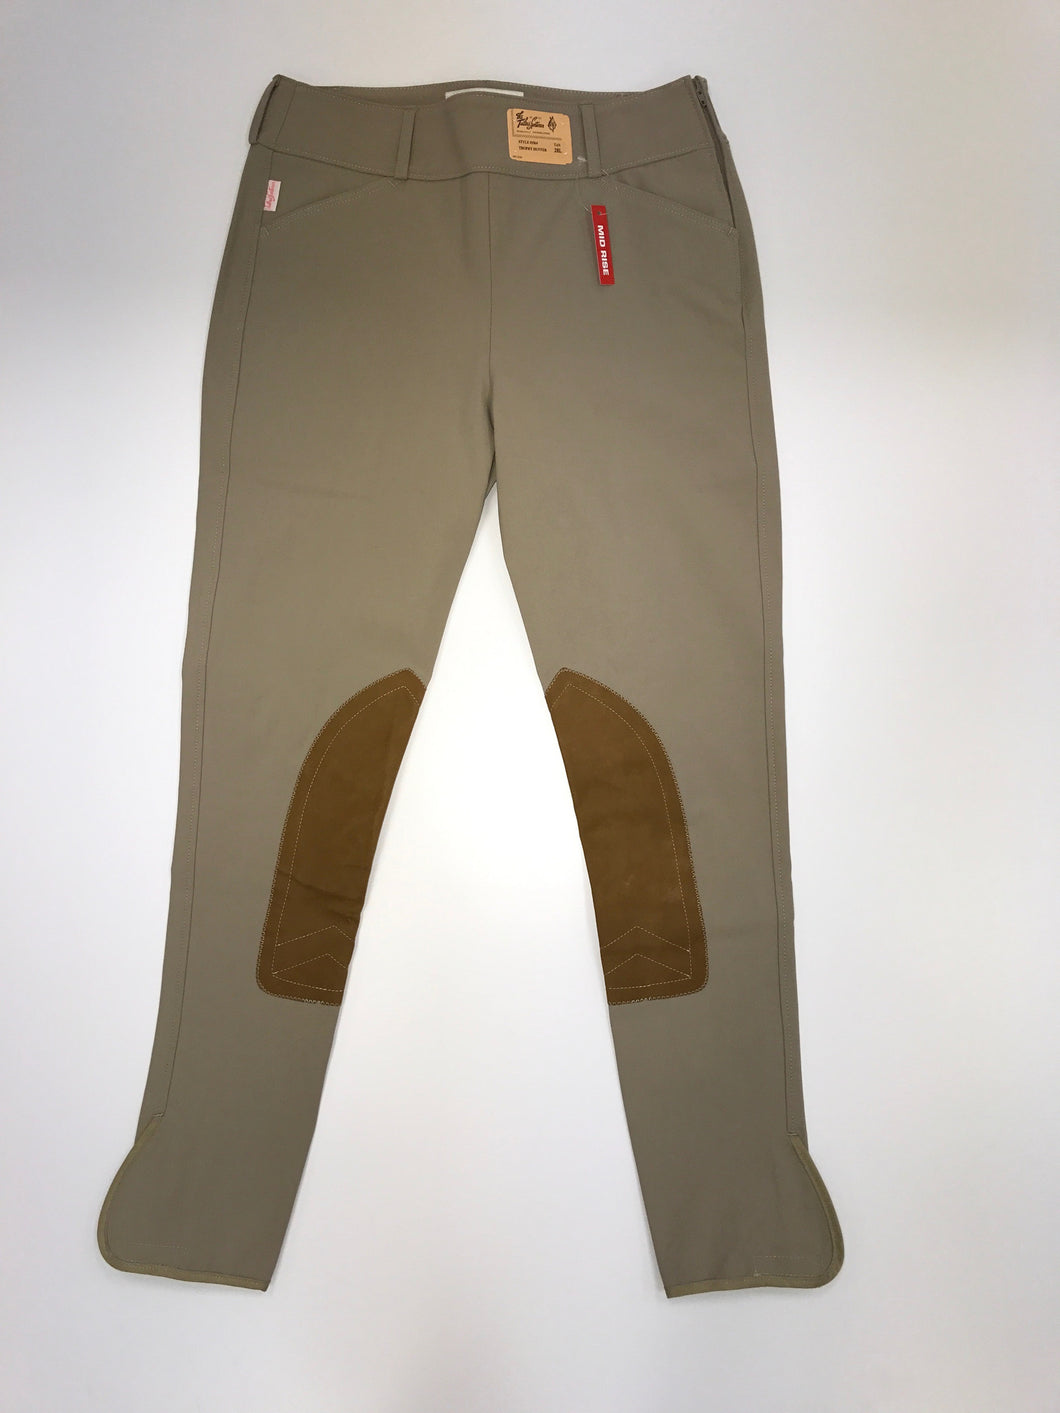 The Tailored Sportsman Trophy Hunter Breech - Mid Rise Side Zip - 1964